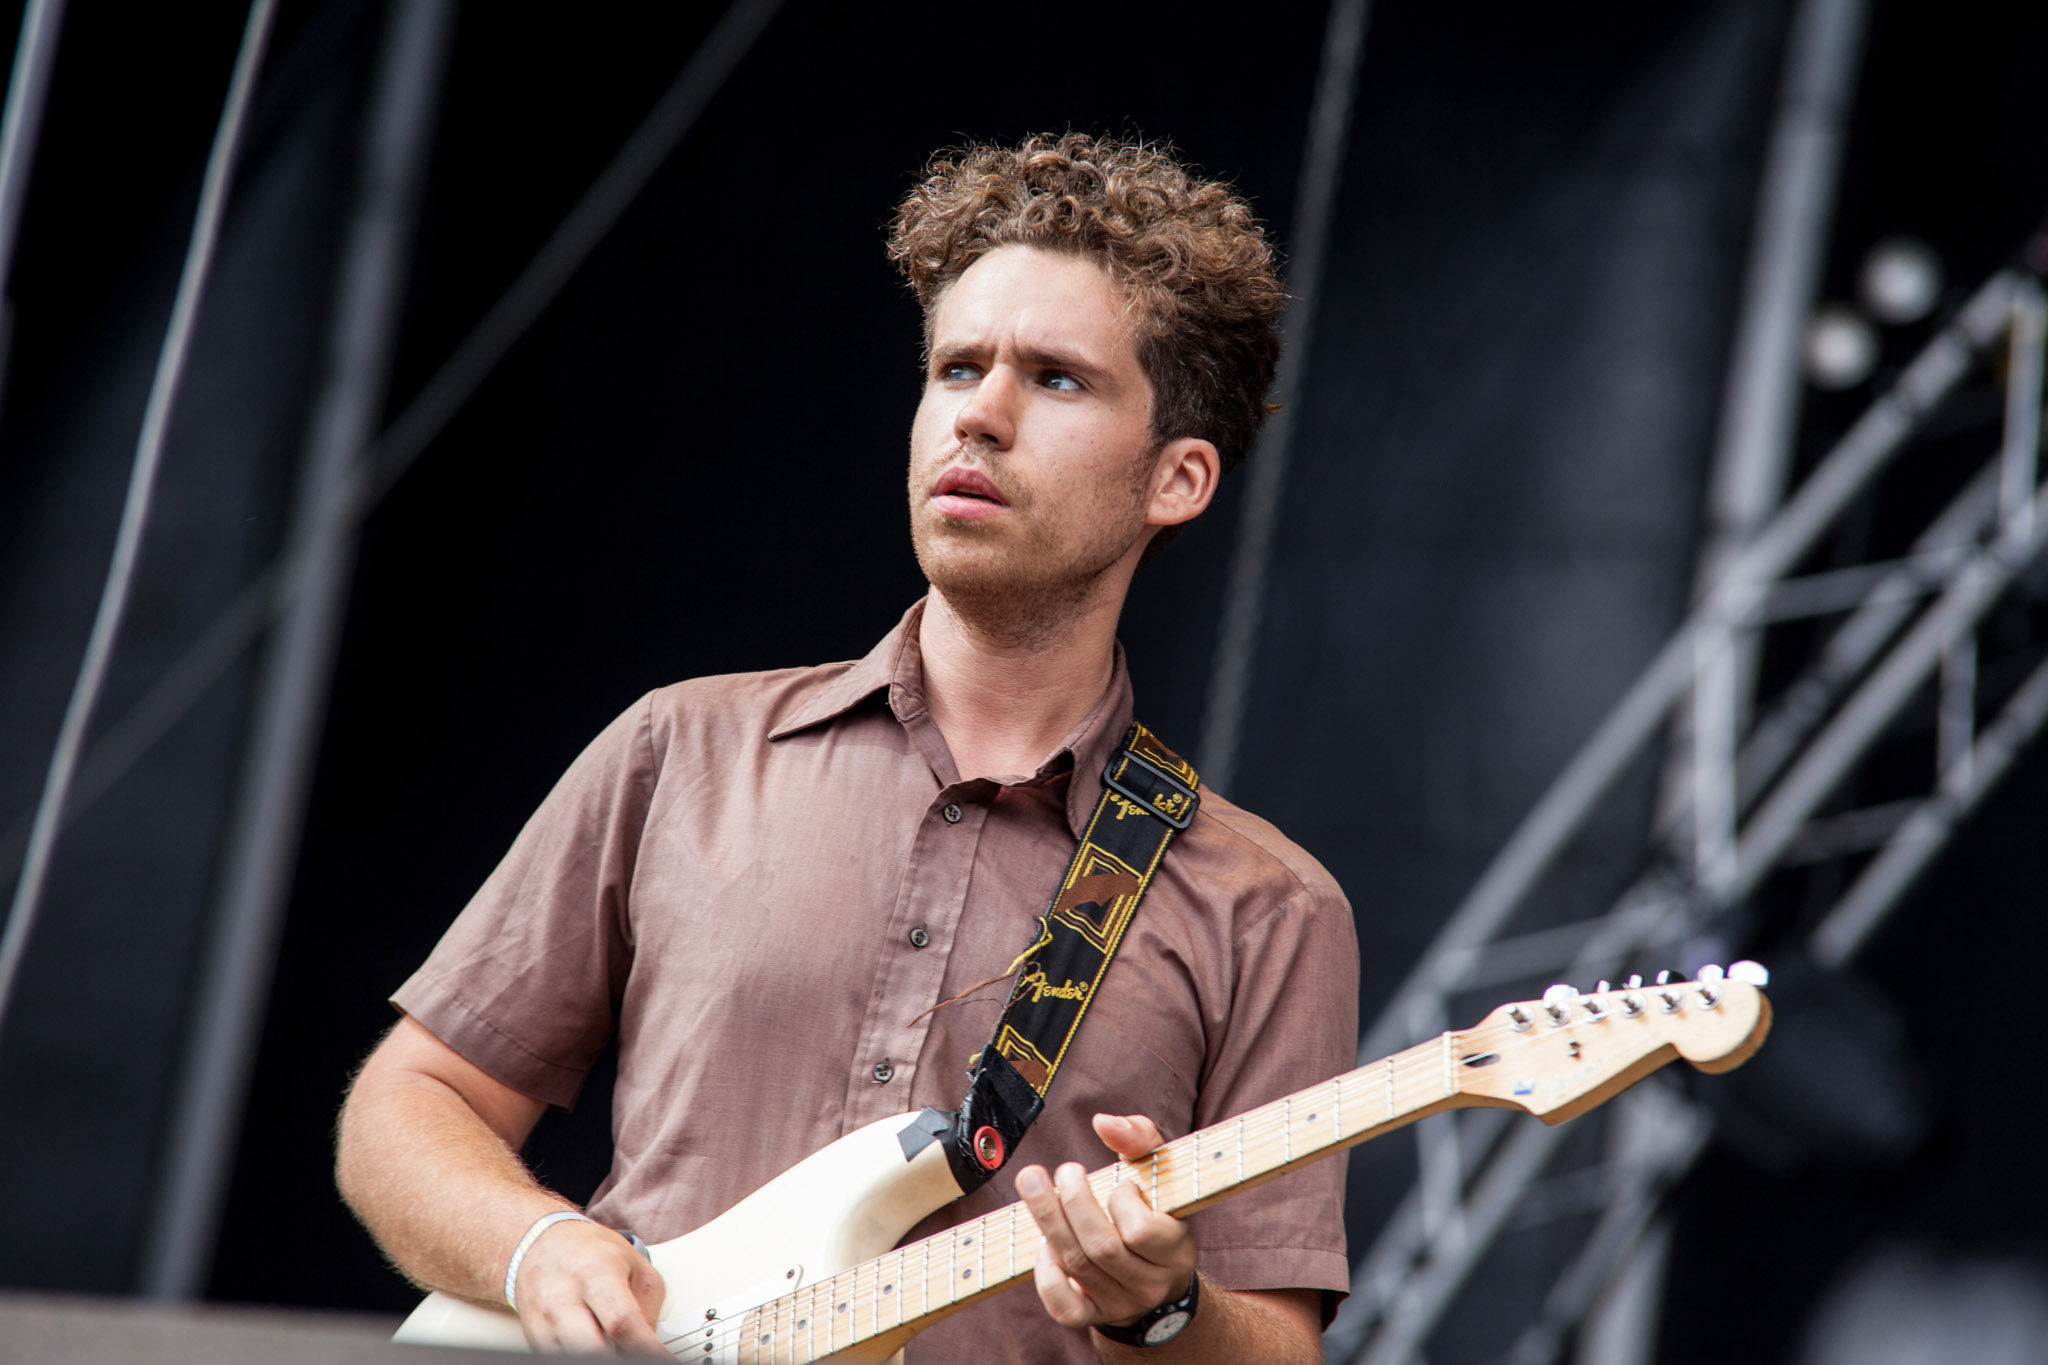 Parquet Courts' Andrew Savage announces first solo art exhibition